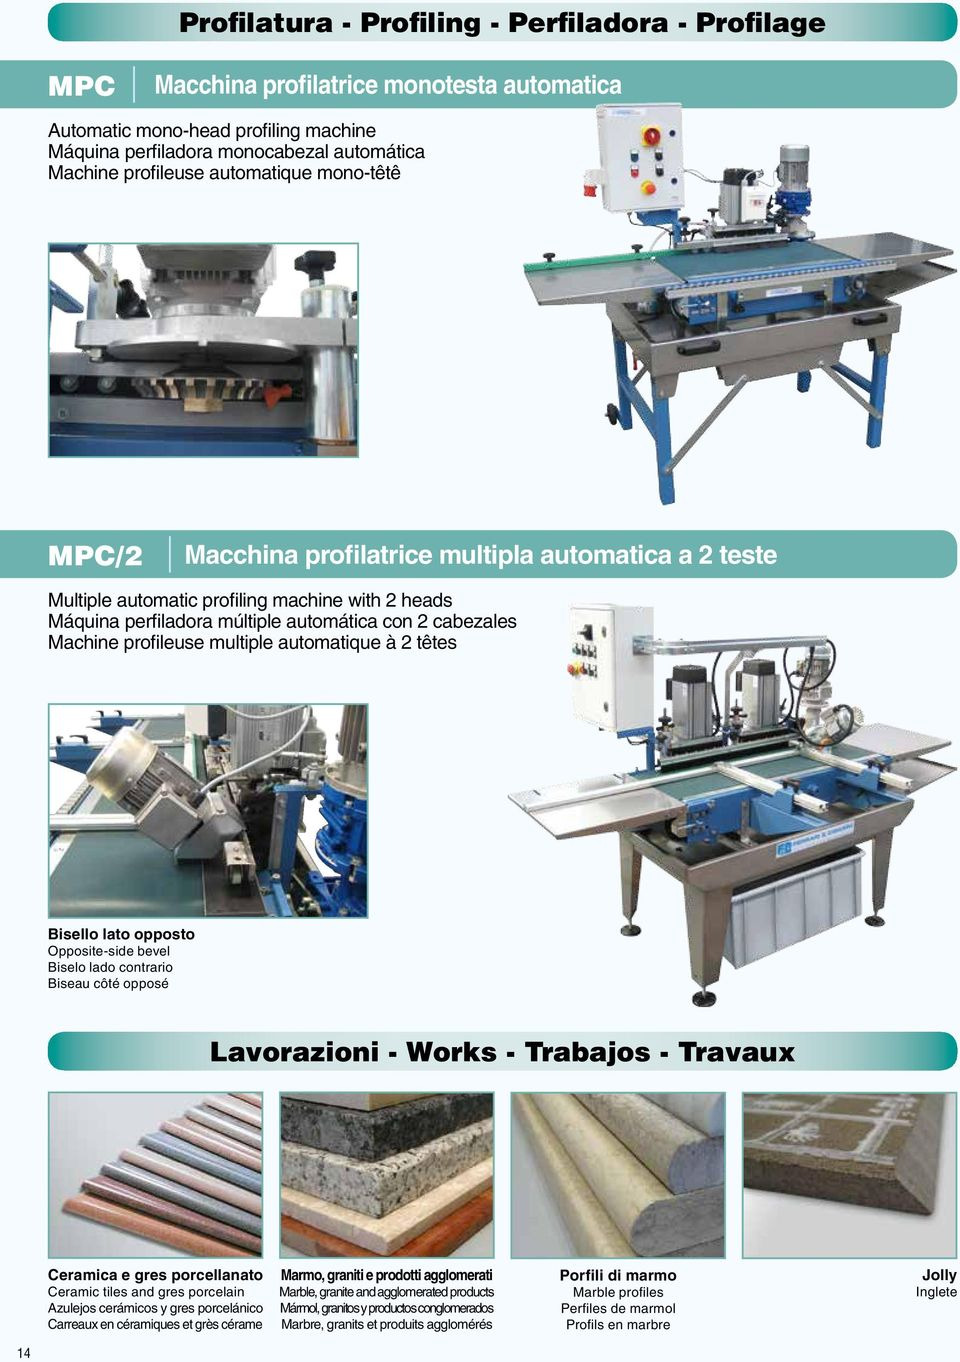 profileuse multiple automatique à 2 têtes Bisello lato opposto Opposite-side bevel Biselo lado contrario Biseau côté opposé Lavorazioni - Works - Trabajos - Travaux Ceramica e gres porcellanato